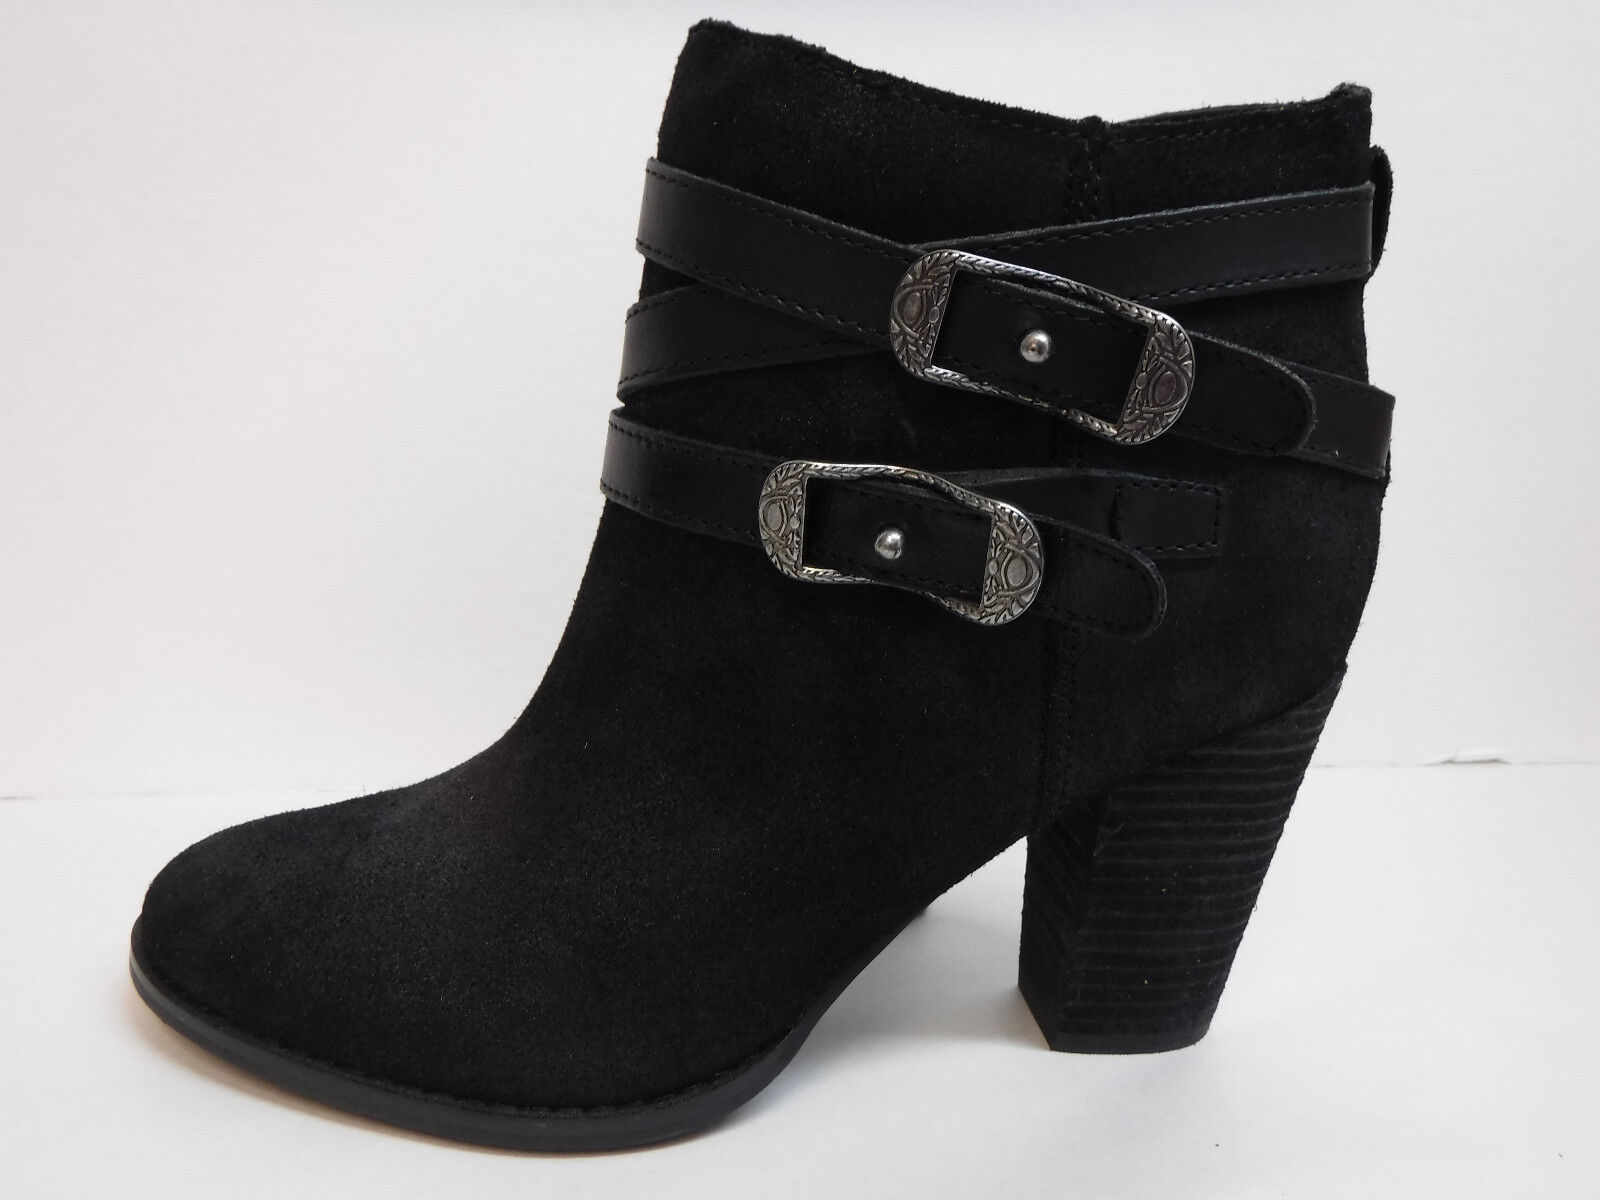 Reba Size 7.5 Black Leather Ankle Boots New Womens Shoes